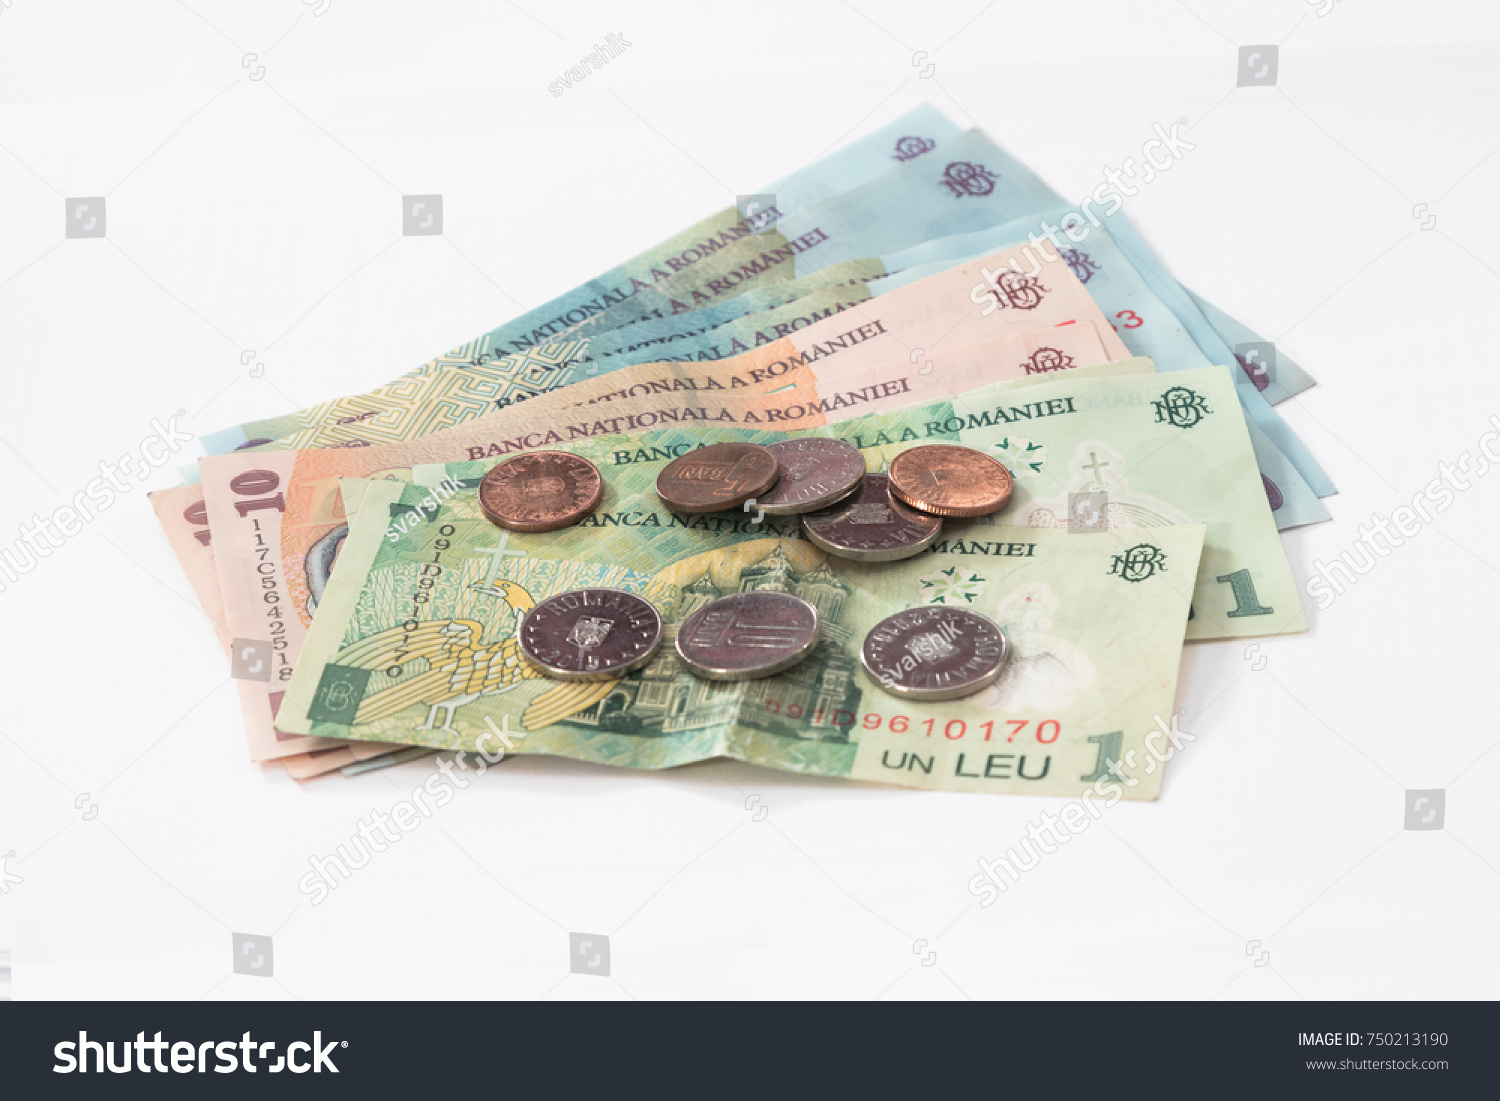 Several Banknotes Worth 100 10 1 Stock Photo (Edit Now) 750213190